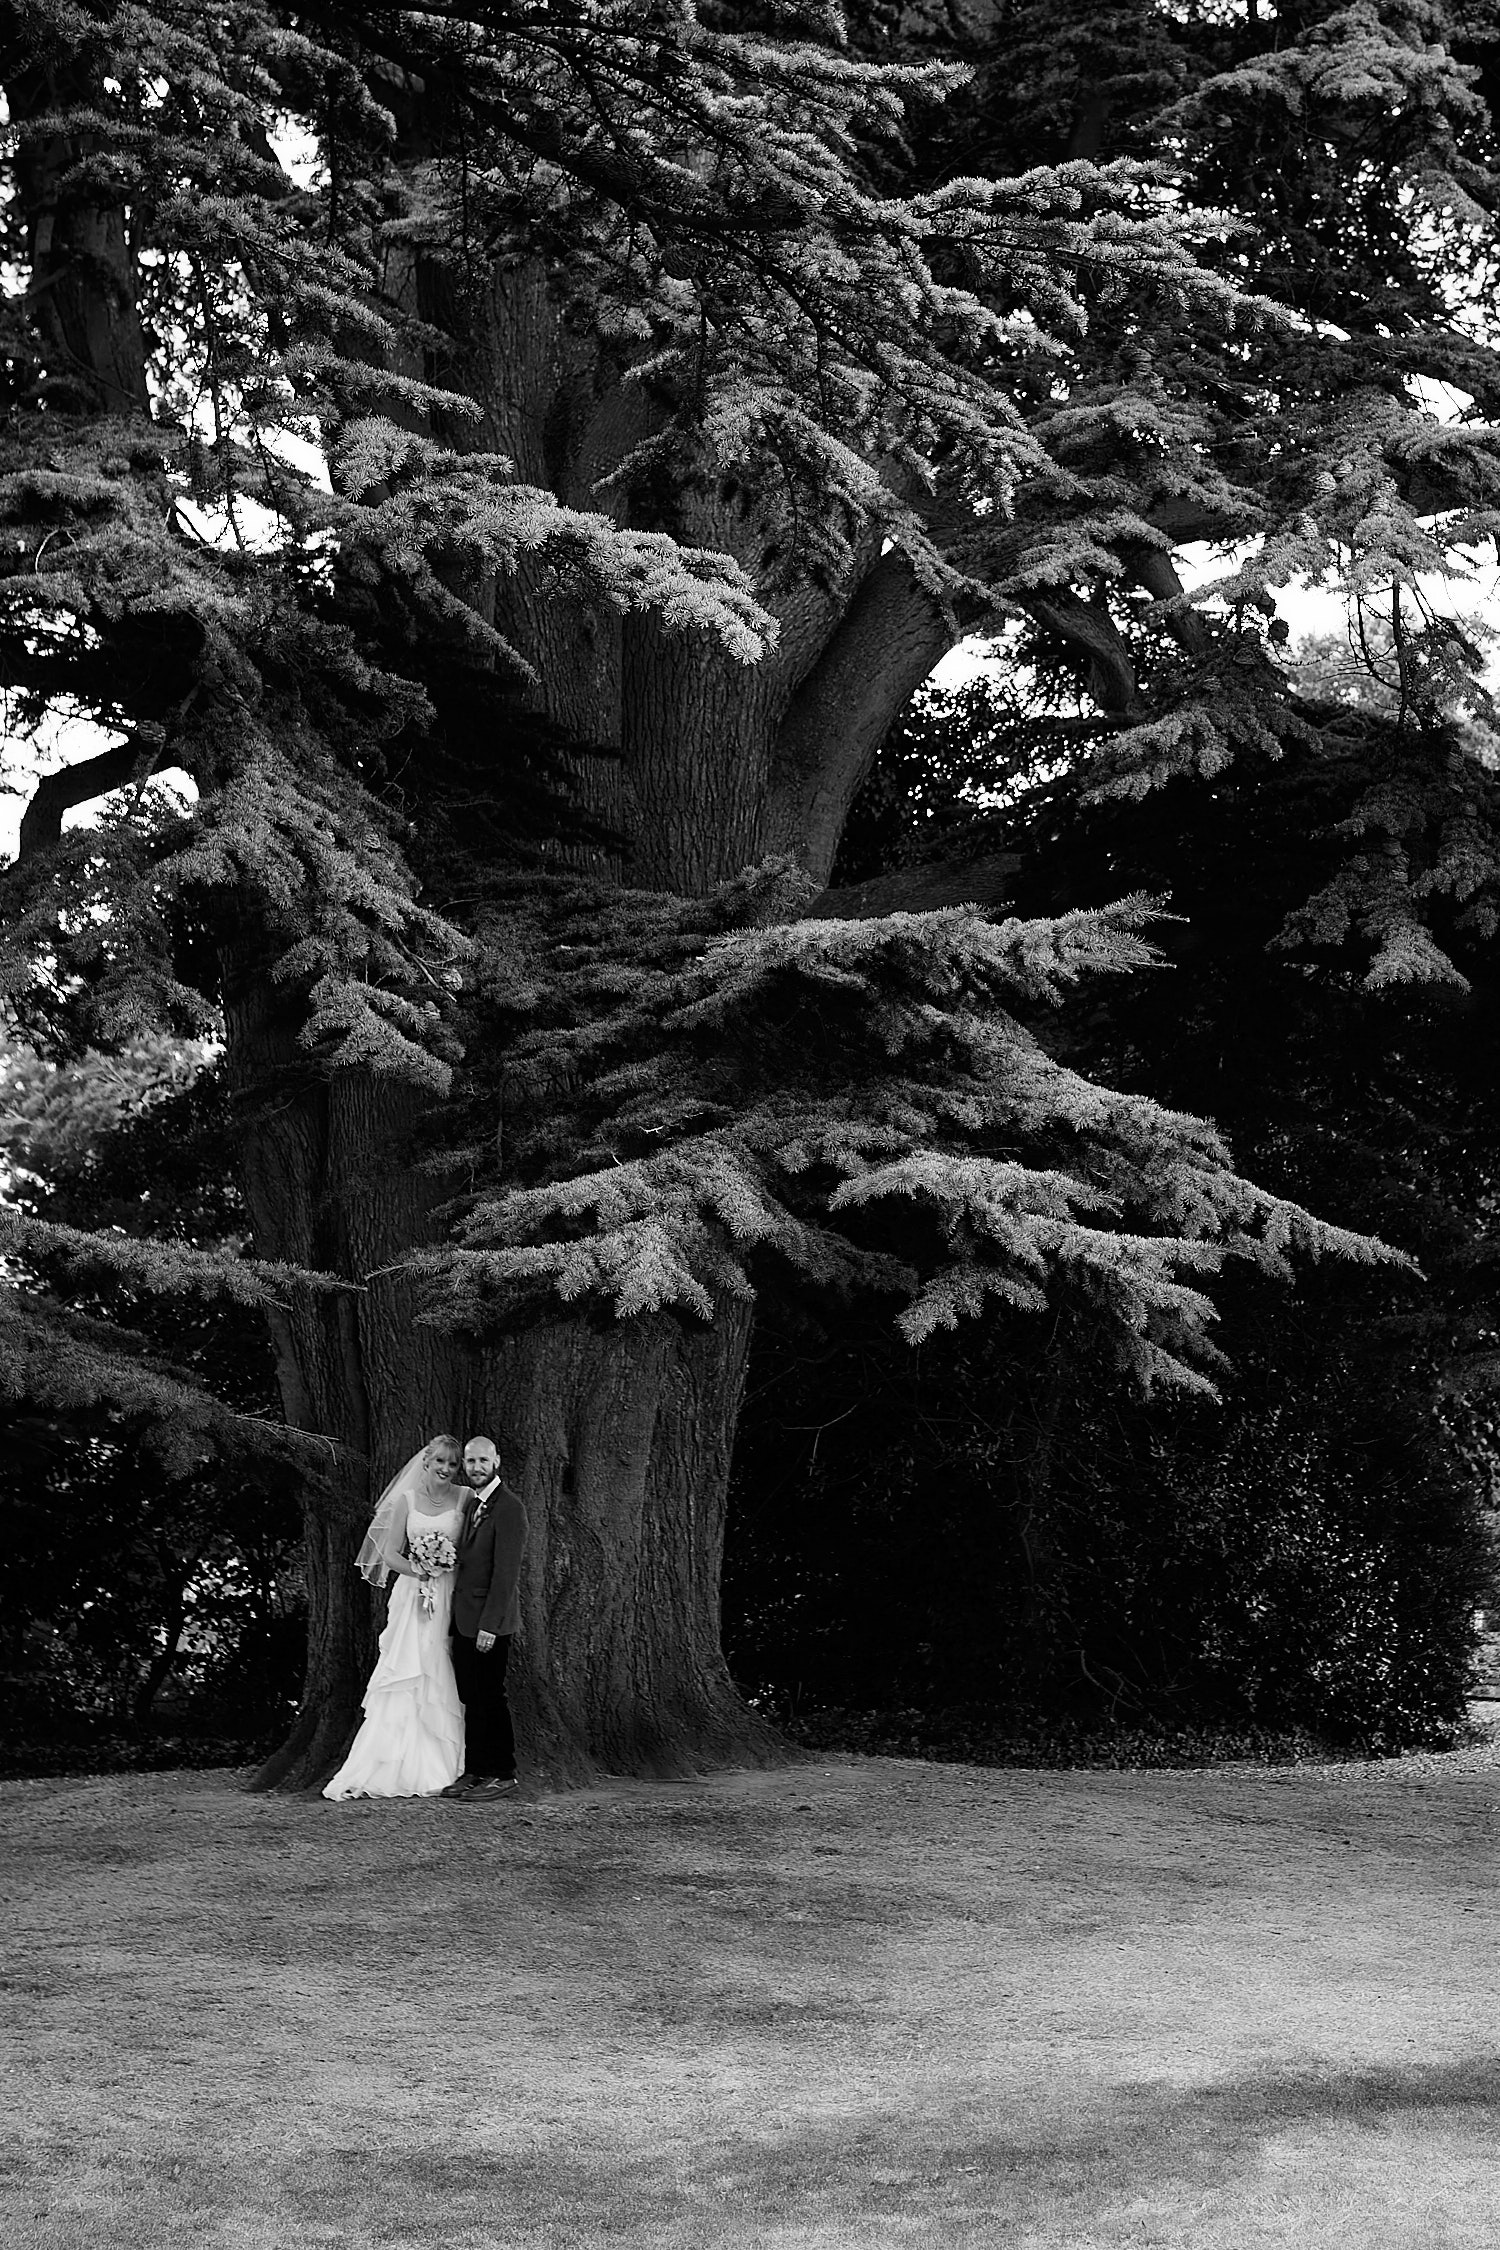 A couple pose by a tree during a Gunby Hall wedding